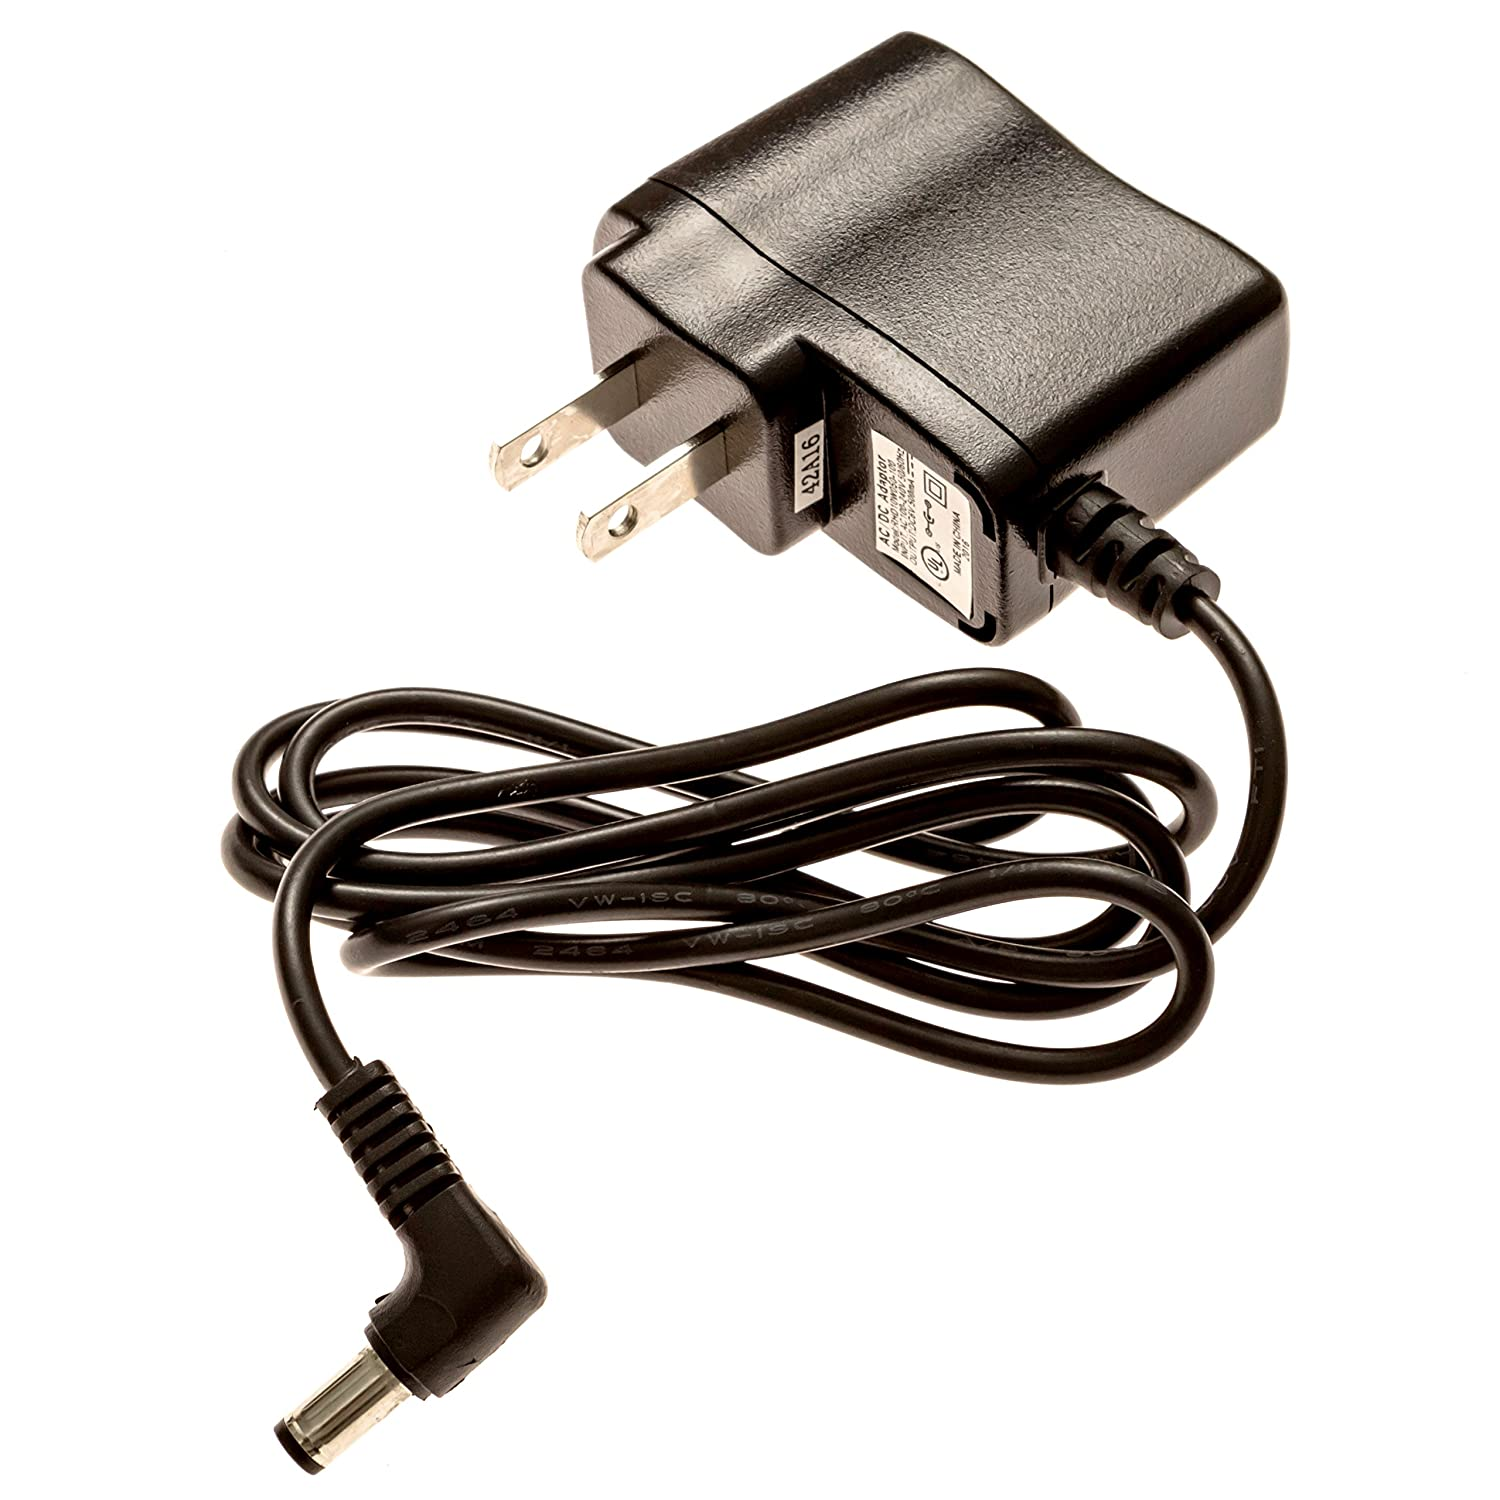 Plug in Adapter for LRA-DCRX Chime Receiver Safeguard Supply